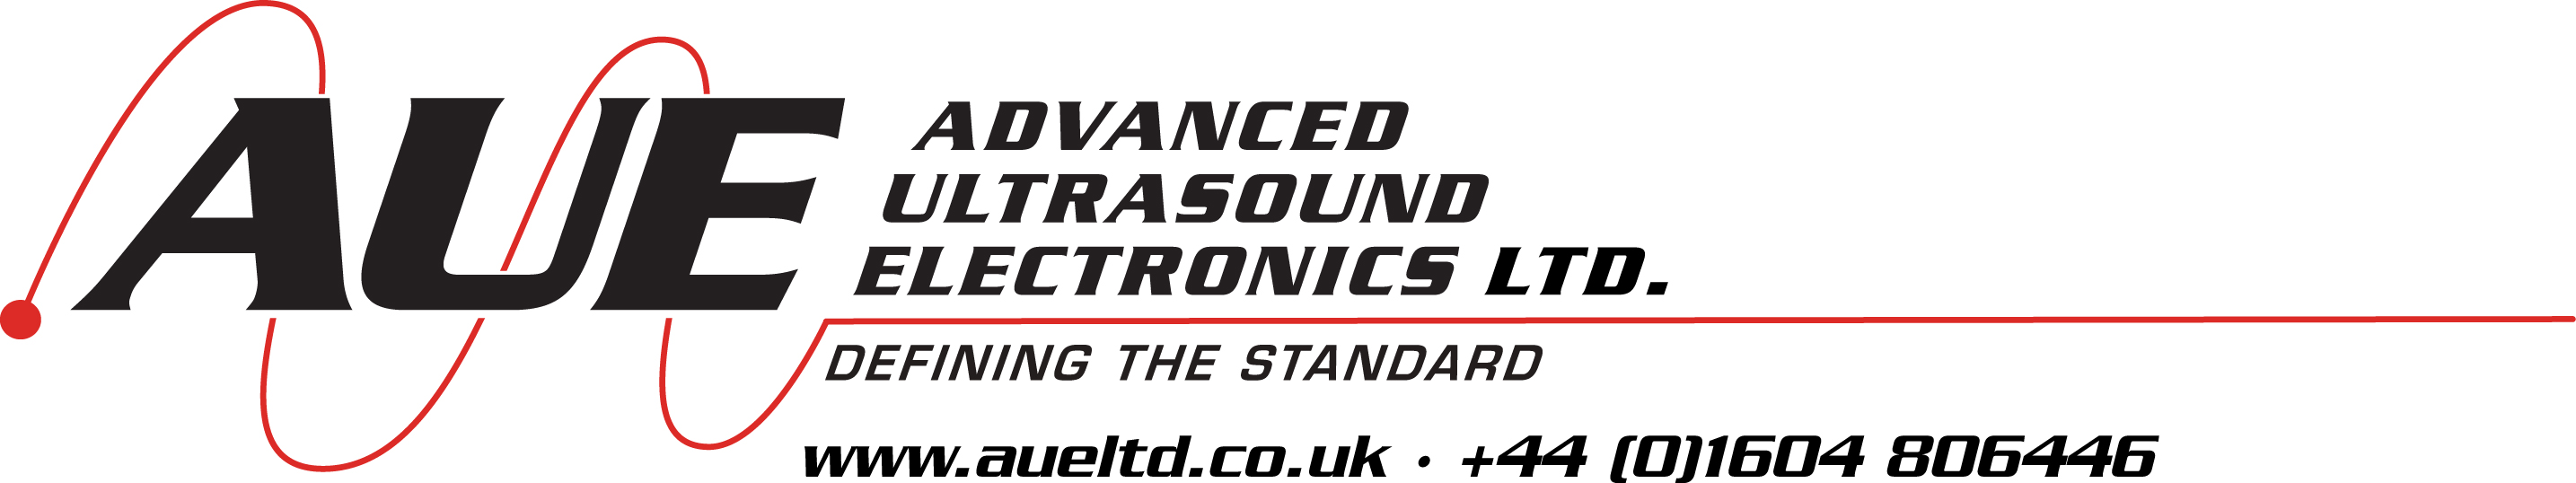 Advanced Ultrasound Electronics Ltd